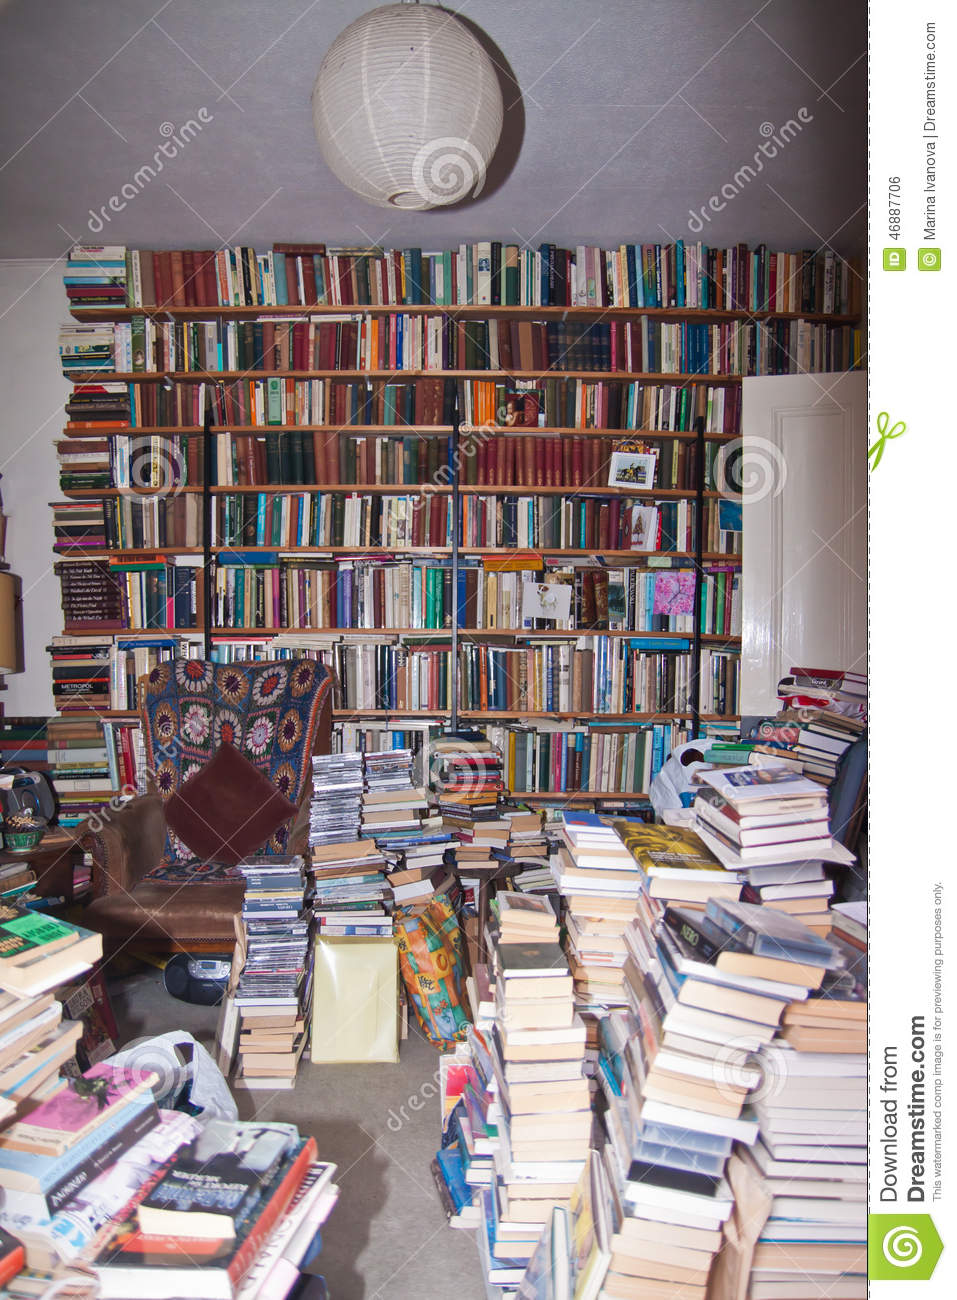 Messy Room Full Of Books Editorial Photo  Image 46887706